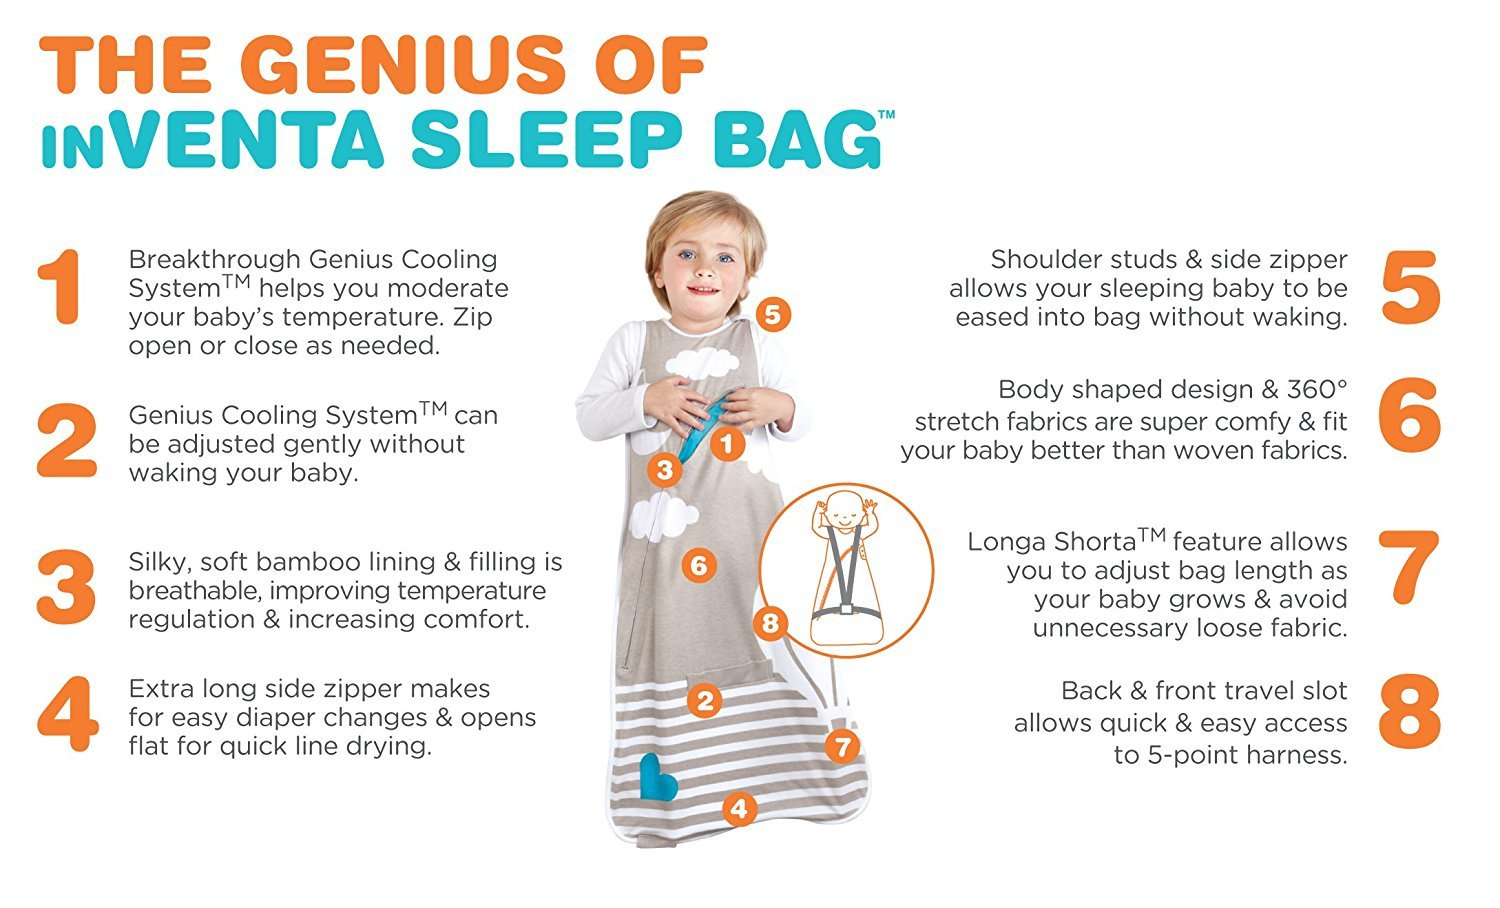 Love To Dream Inventa Lightweight Sleep Bag/Wearable Blanket with Unique Vented Cooling System, Luxurious Super-Soft CotTon, Stylish Fashion Design, .5 TOG, 4-12 Months, Light Blue by Love to Dream (Image #3)